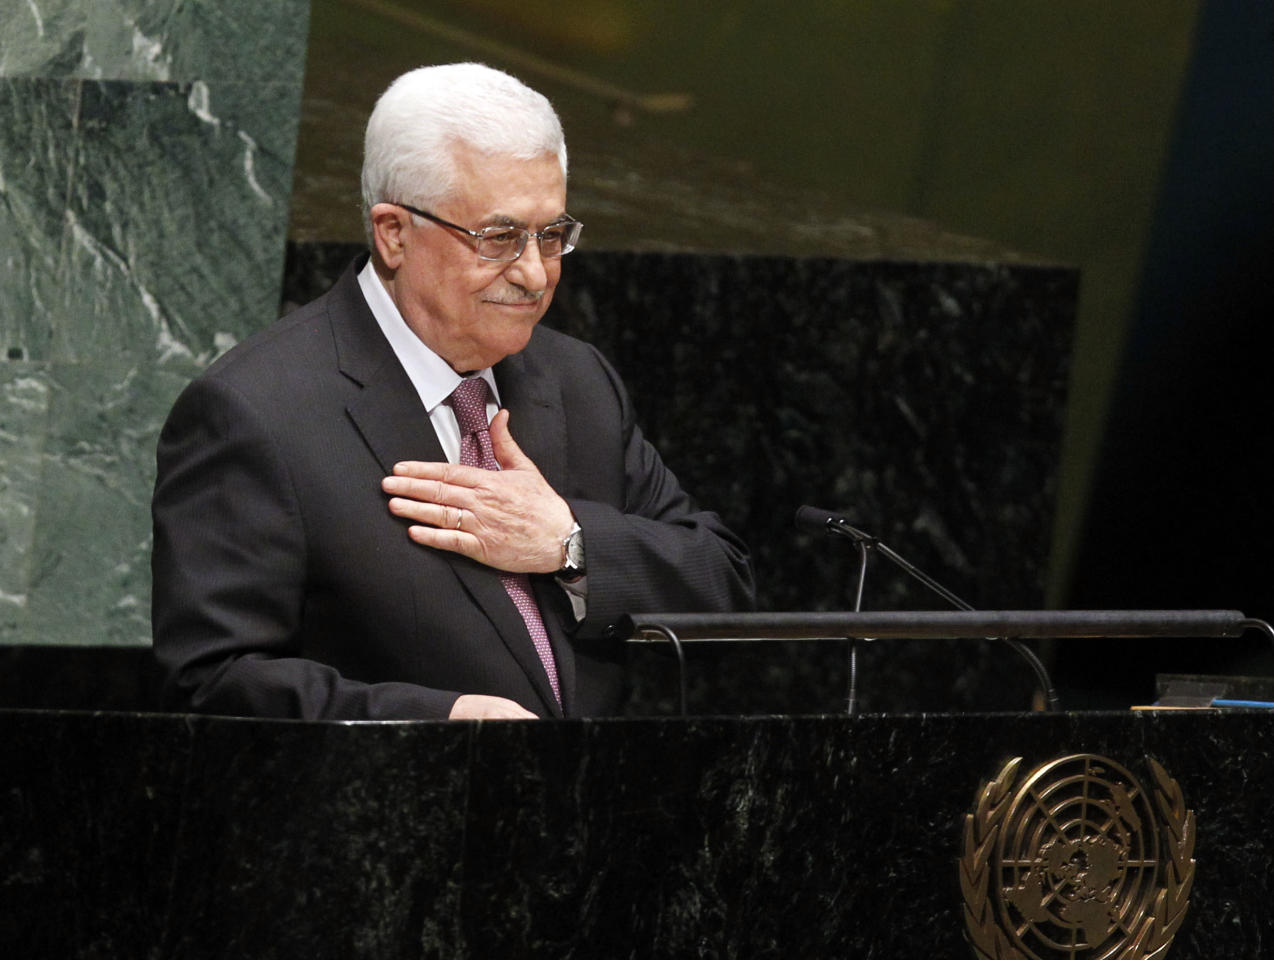 IMAGE DISTRIBUTED FOR AVAAZ - President of the Palestinan National Authority Mahmoud Abbas addresses the U.N. General Assembly before the body's historic vote to recognize Palestine as its 194th State at U.N. Headquarters, Thursday, Nov. 29, 2012. (Jason DeCrow/AP Images for Avaaz)